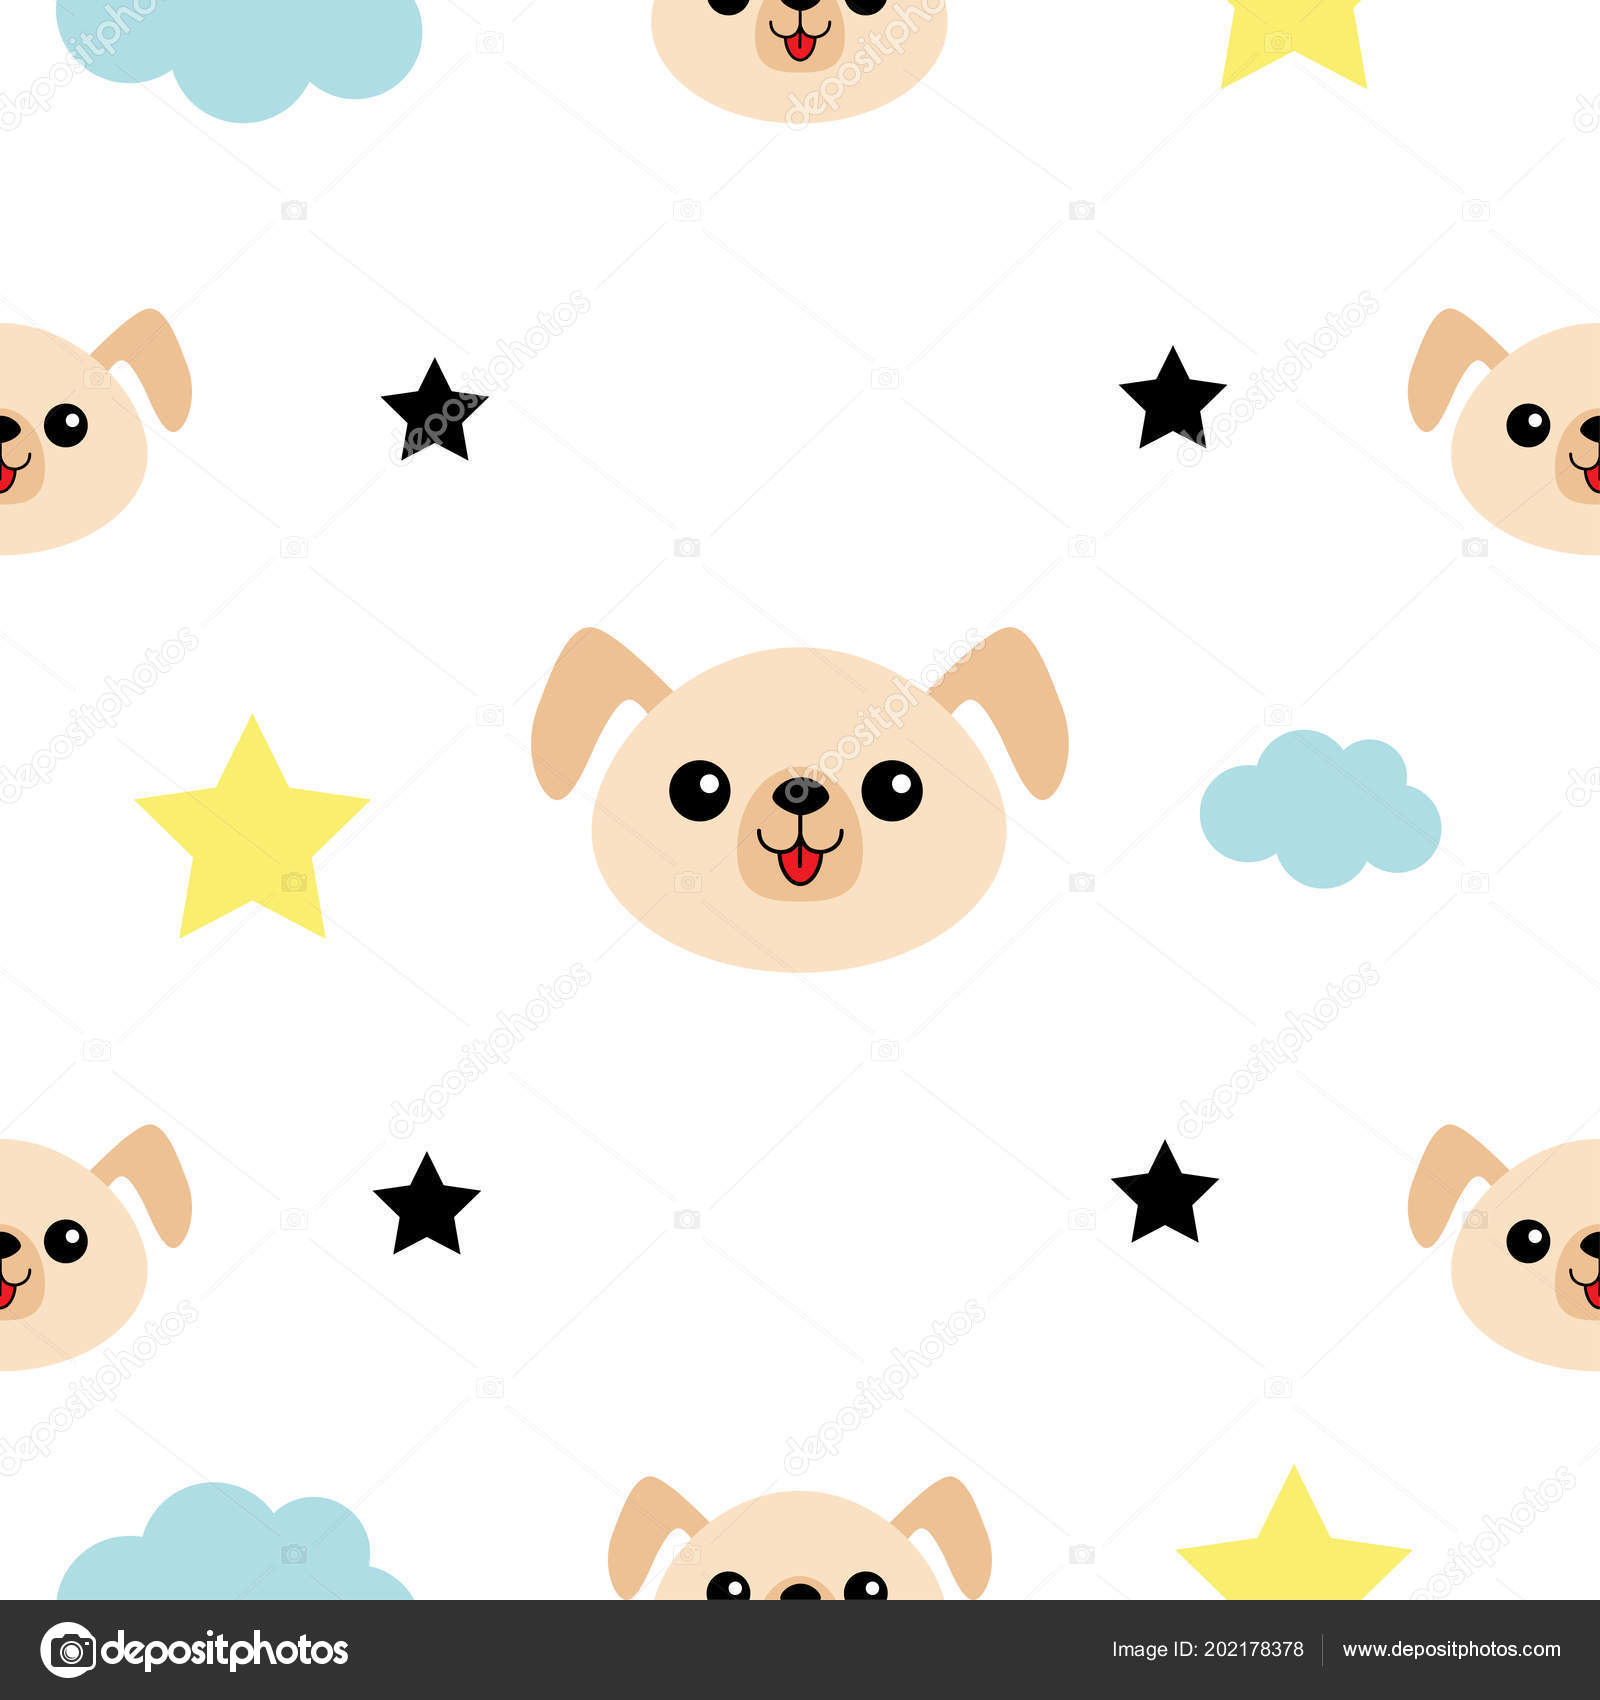 Dog Head Hands Cloud Star Shape Cute Cartoon Kawaii Character